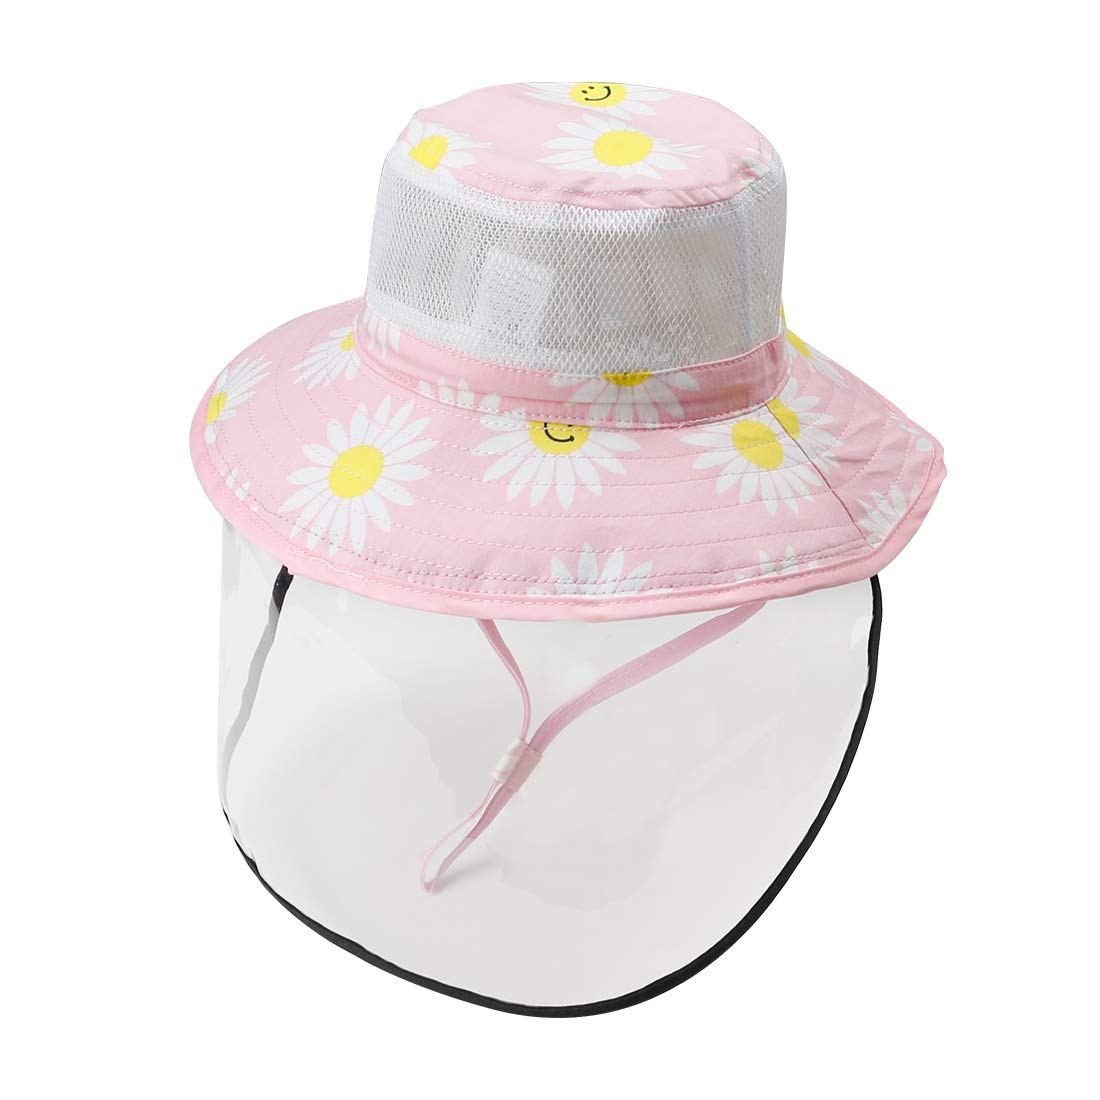 0-12Y Happy Cherry Kids Hat Wide Brim Baby Sun Hat Detachable Protective Cover Toddler Bucket Hat